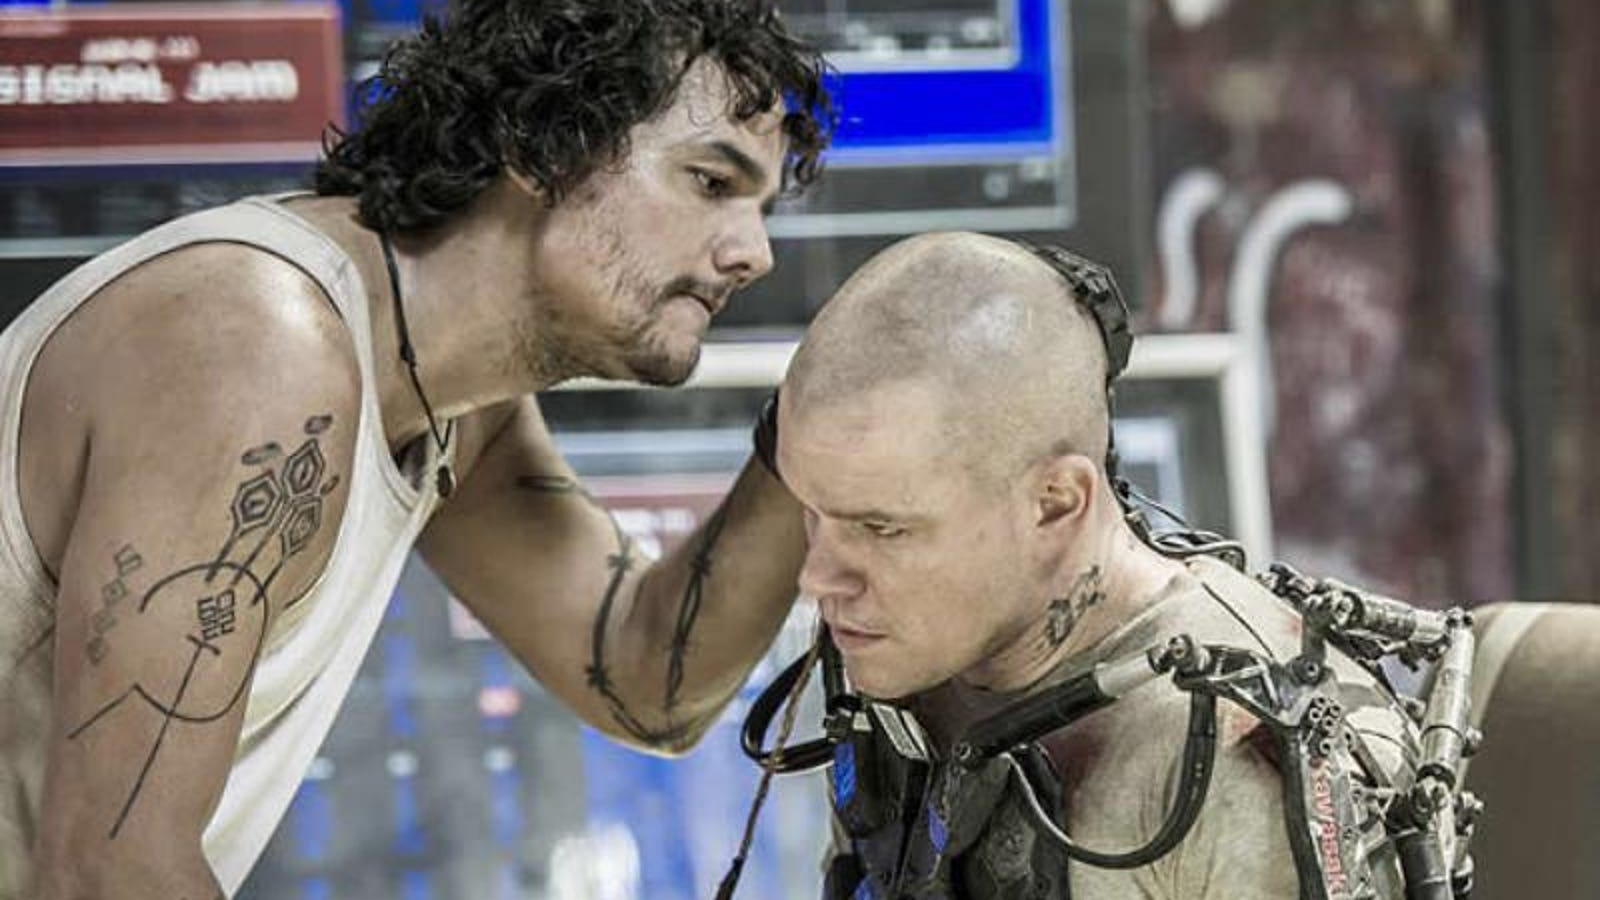 We've seen 10 minutes of Neil Blomkamp's Elysium, and it is AWESOME